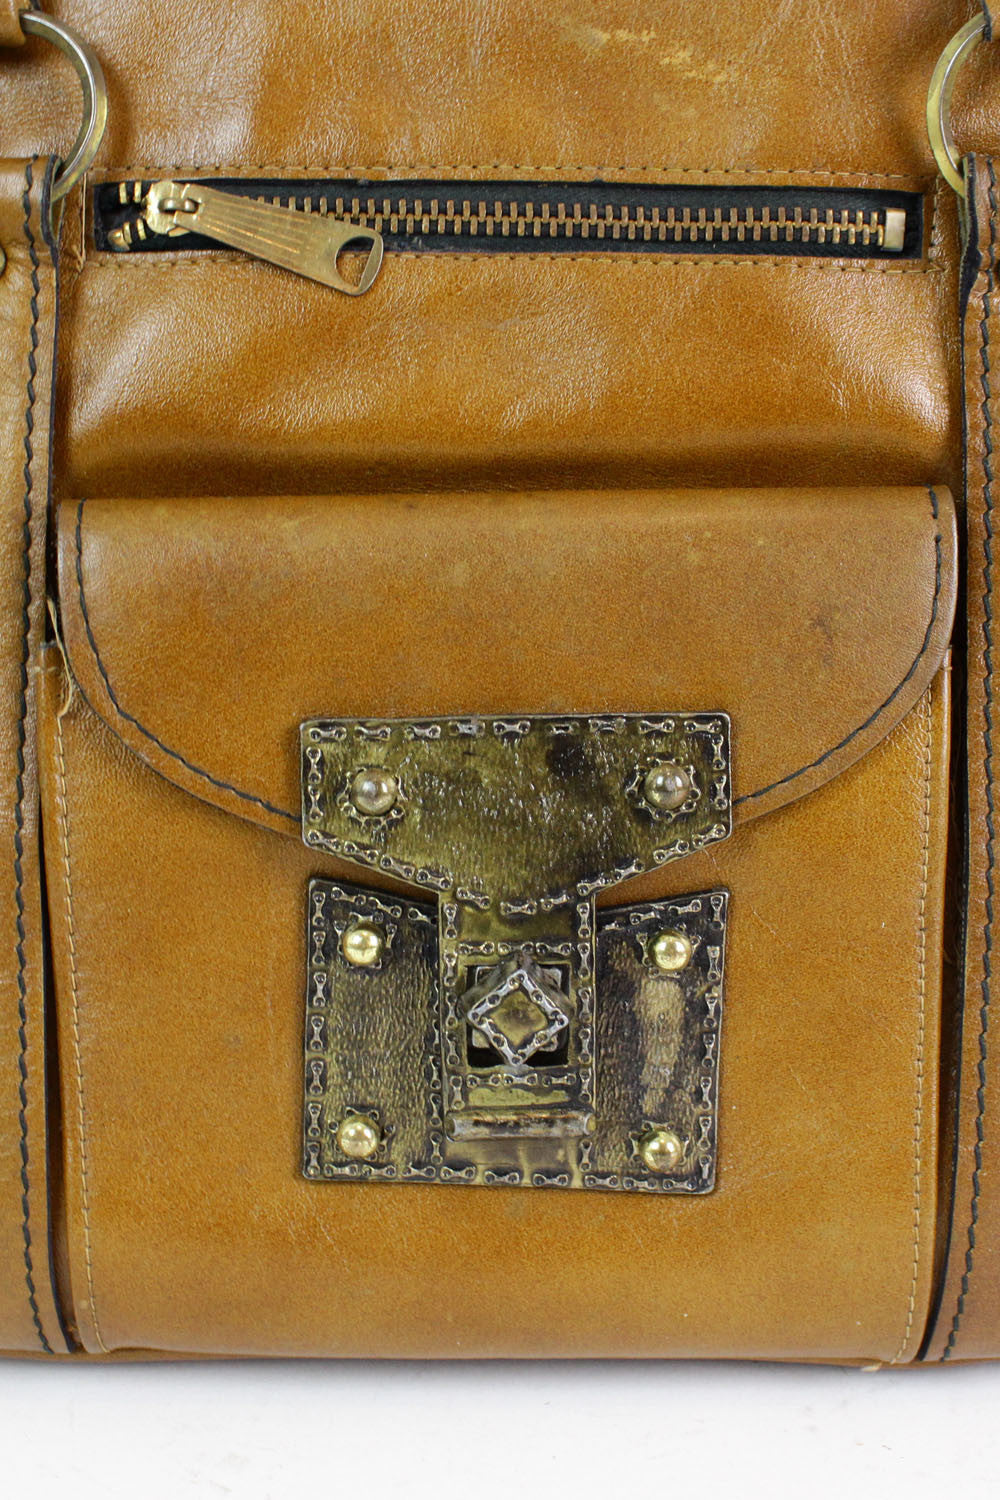 medieval locking handbag